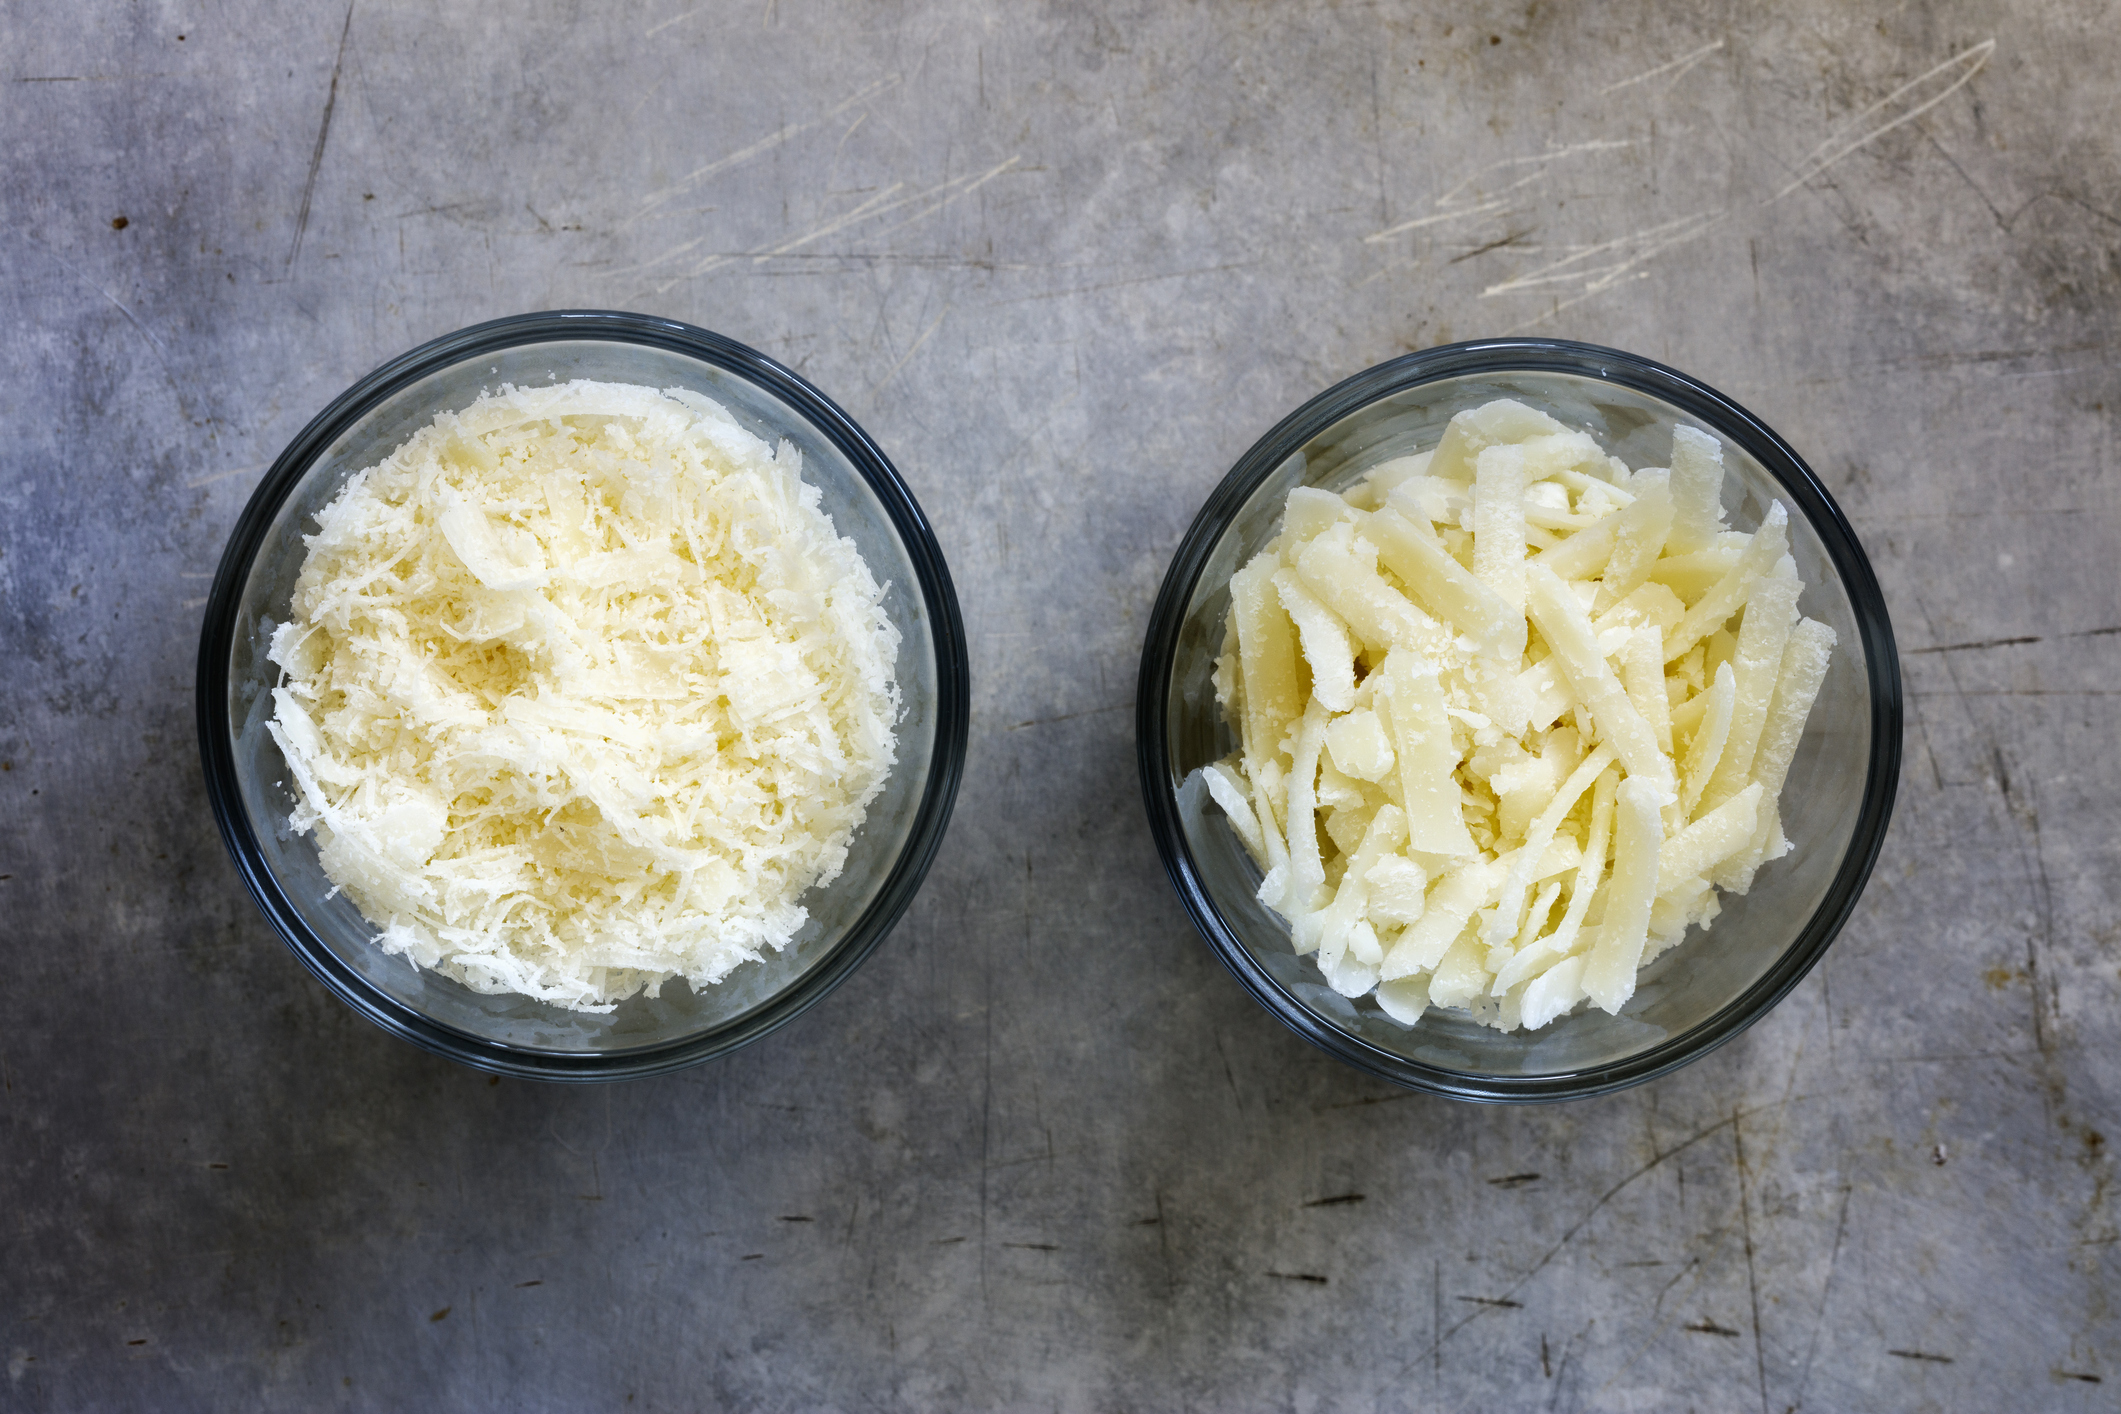 Why is Parmesan cheese not vegetarian?